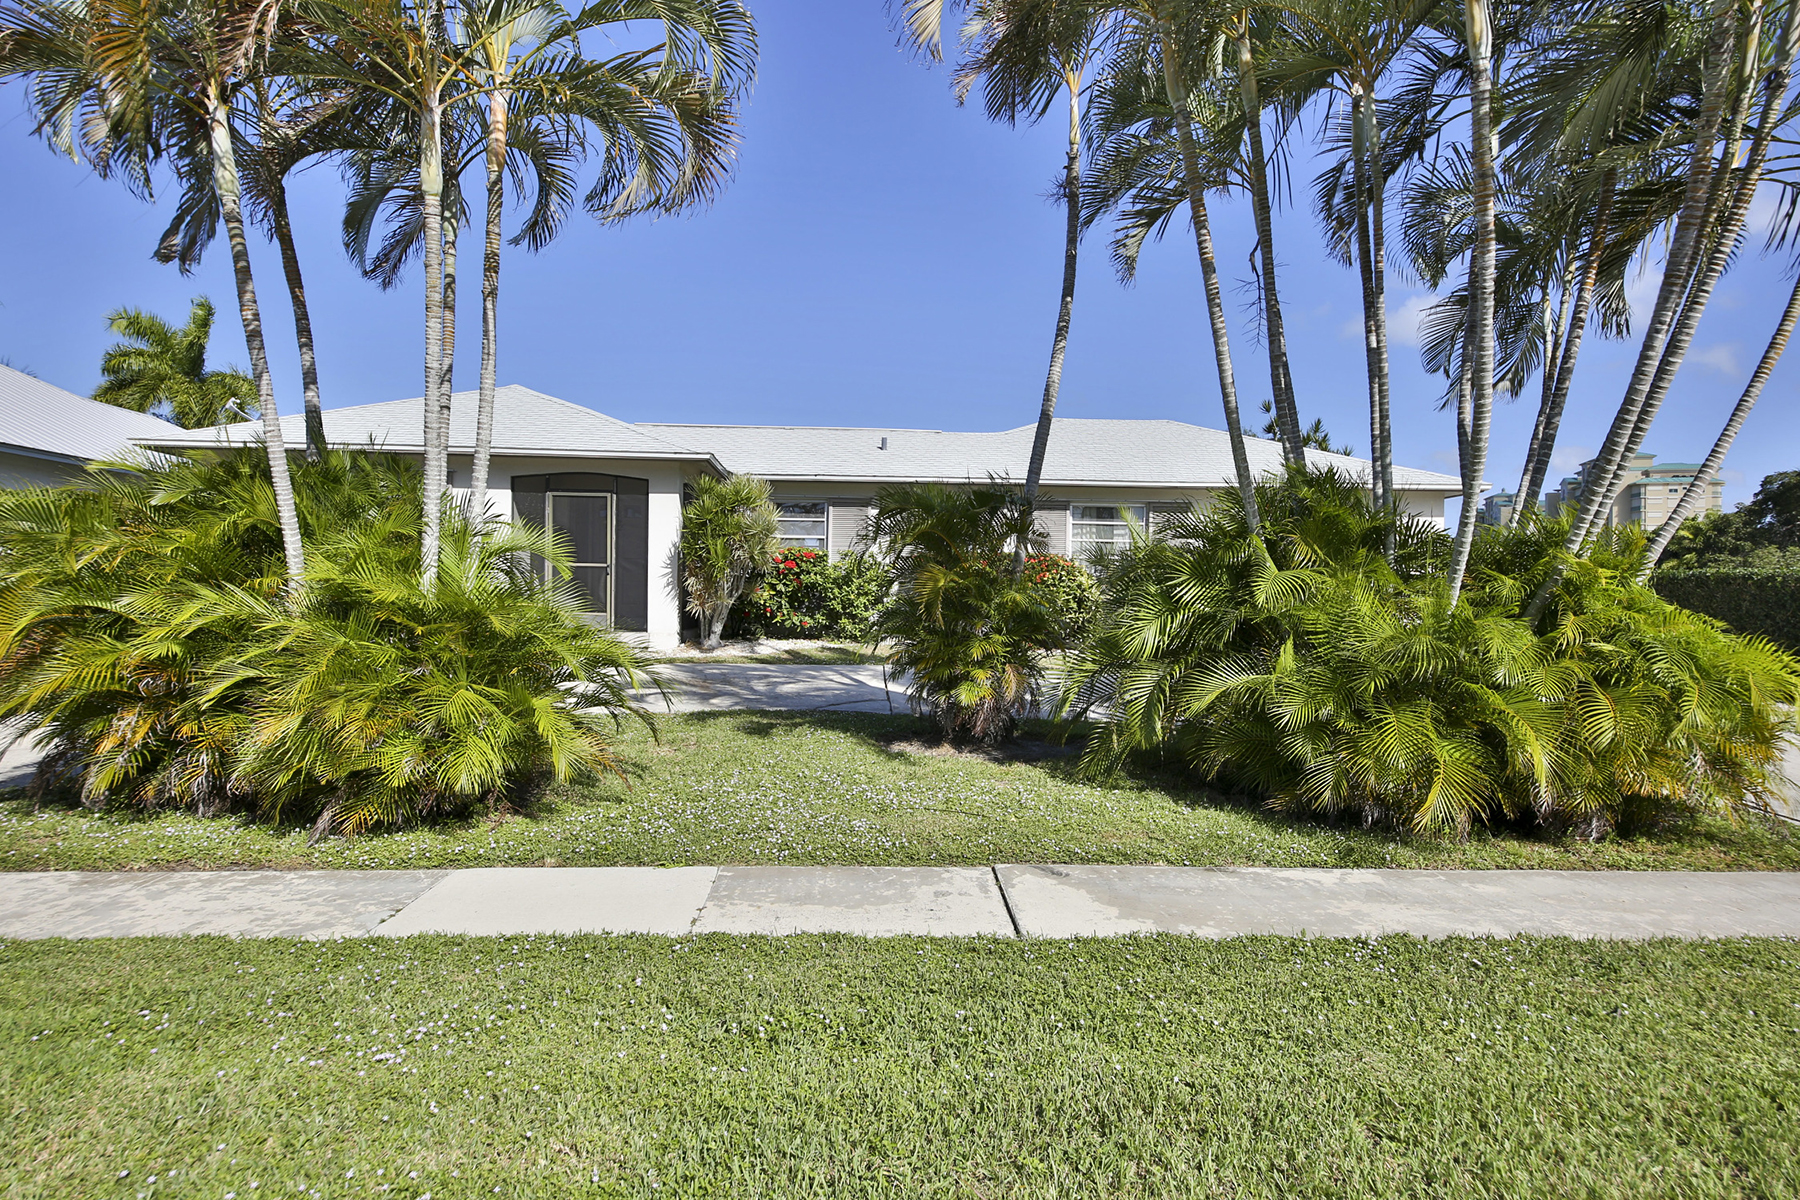 Single Family Home for Sale at MARCO ISLAND - ELM COURT 842 Elm Ct Marco Island, Florida, 34145 United States